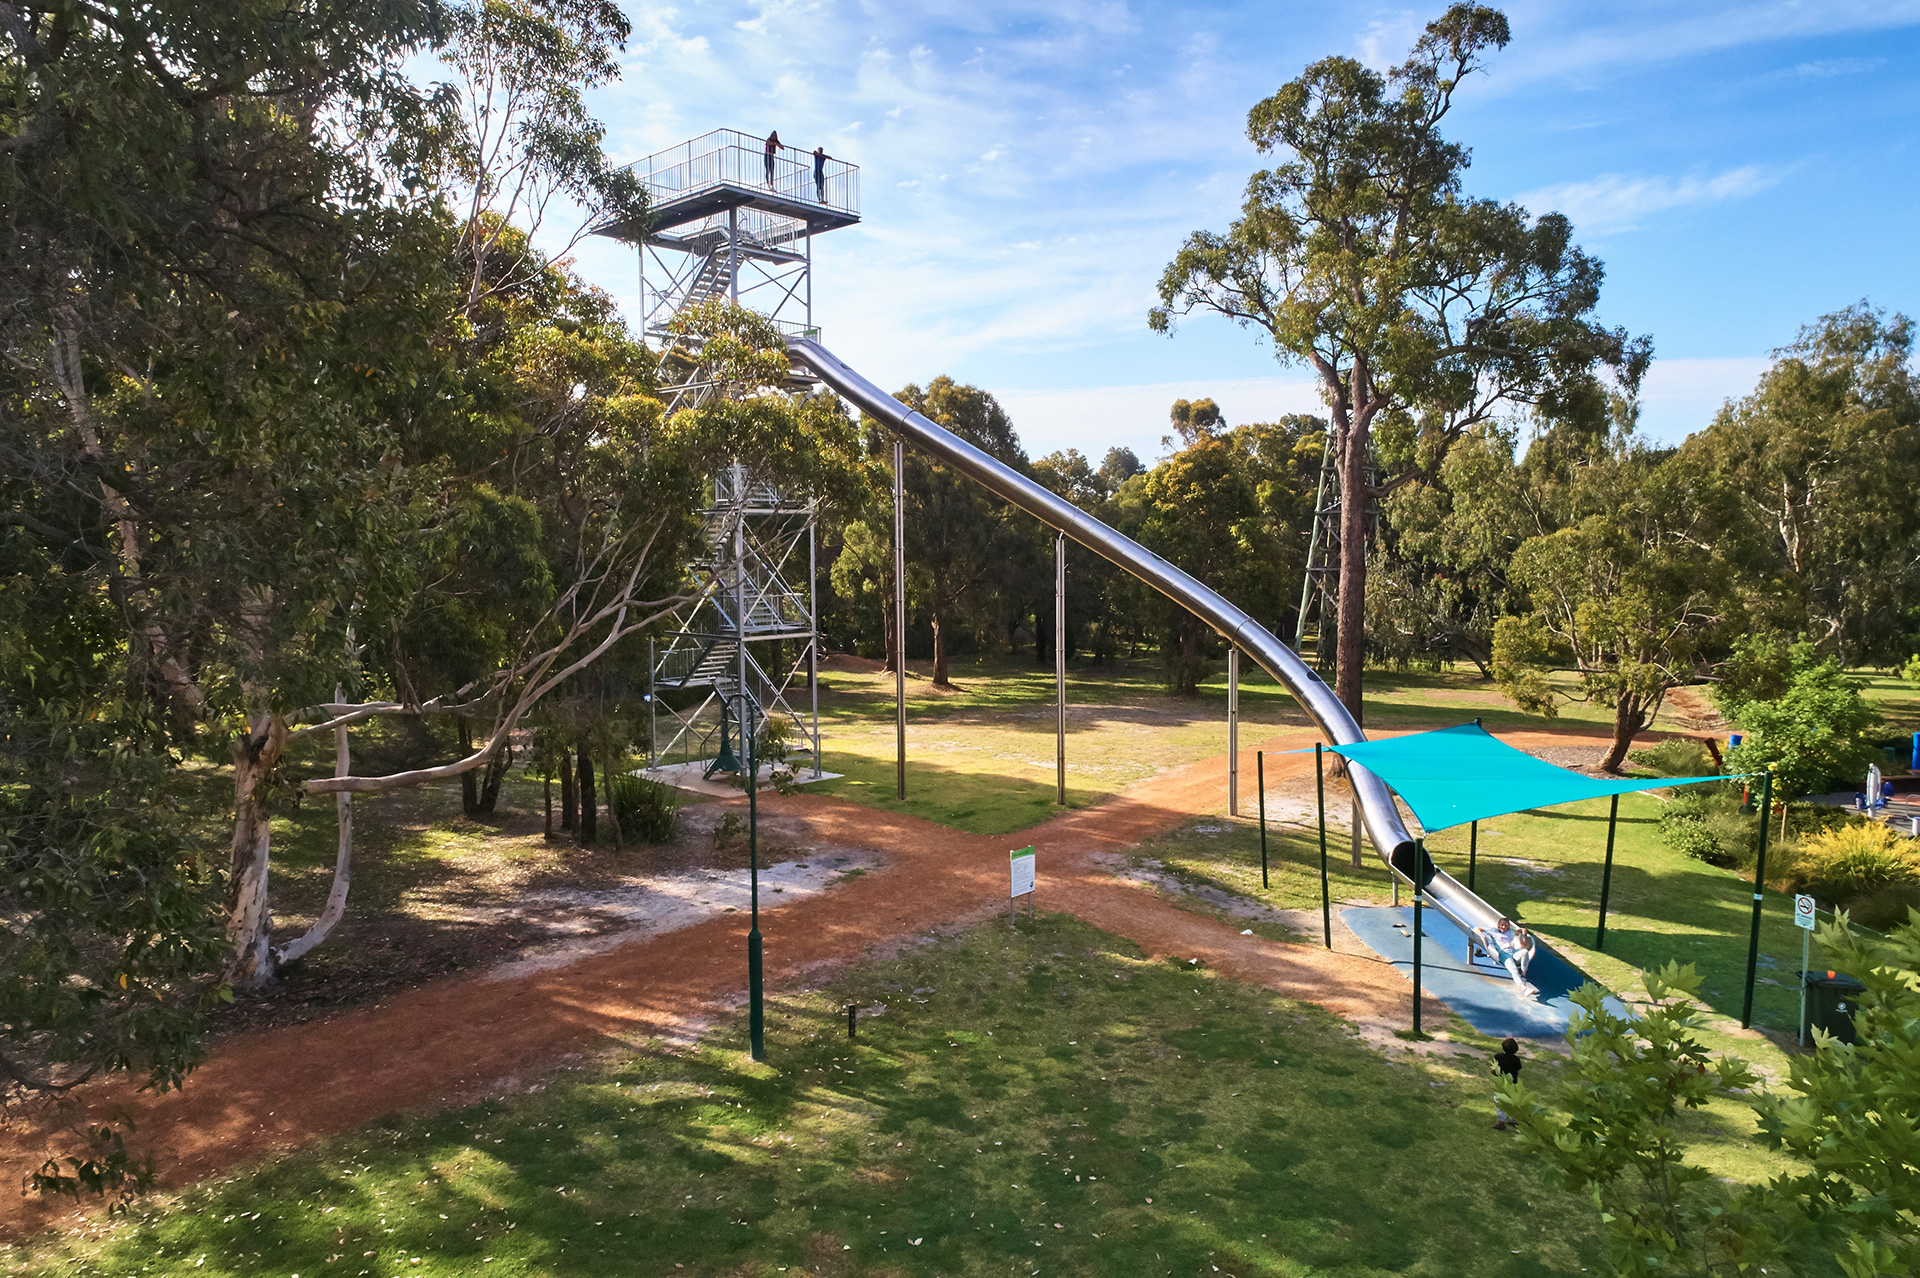 Very tall lookout tower and tube slide surrounded by trees